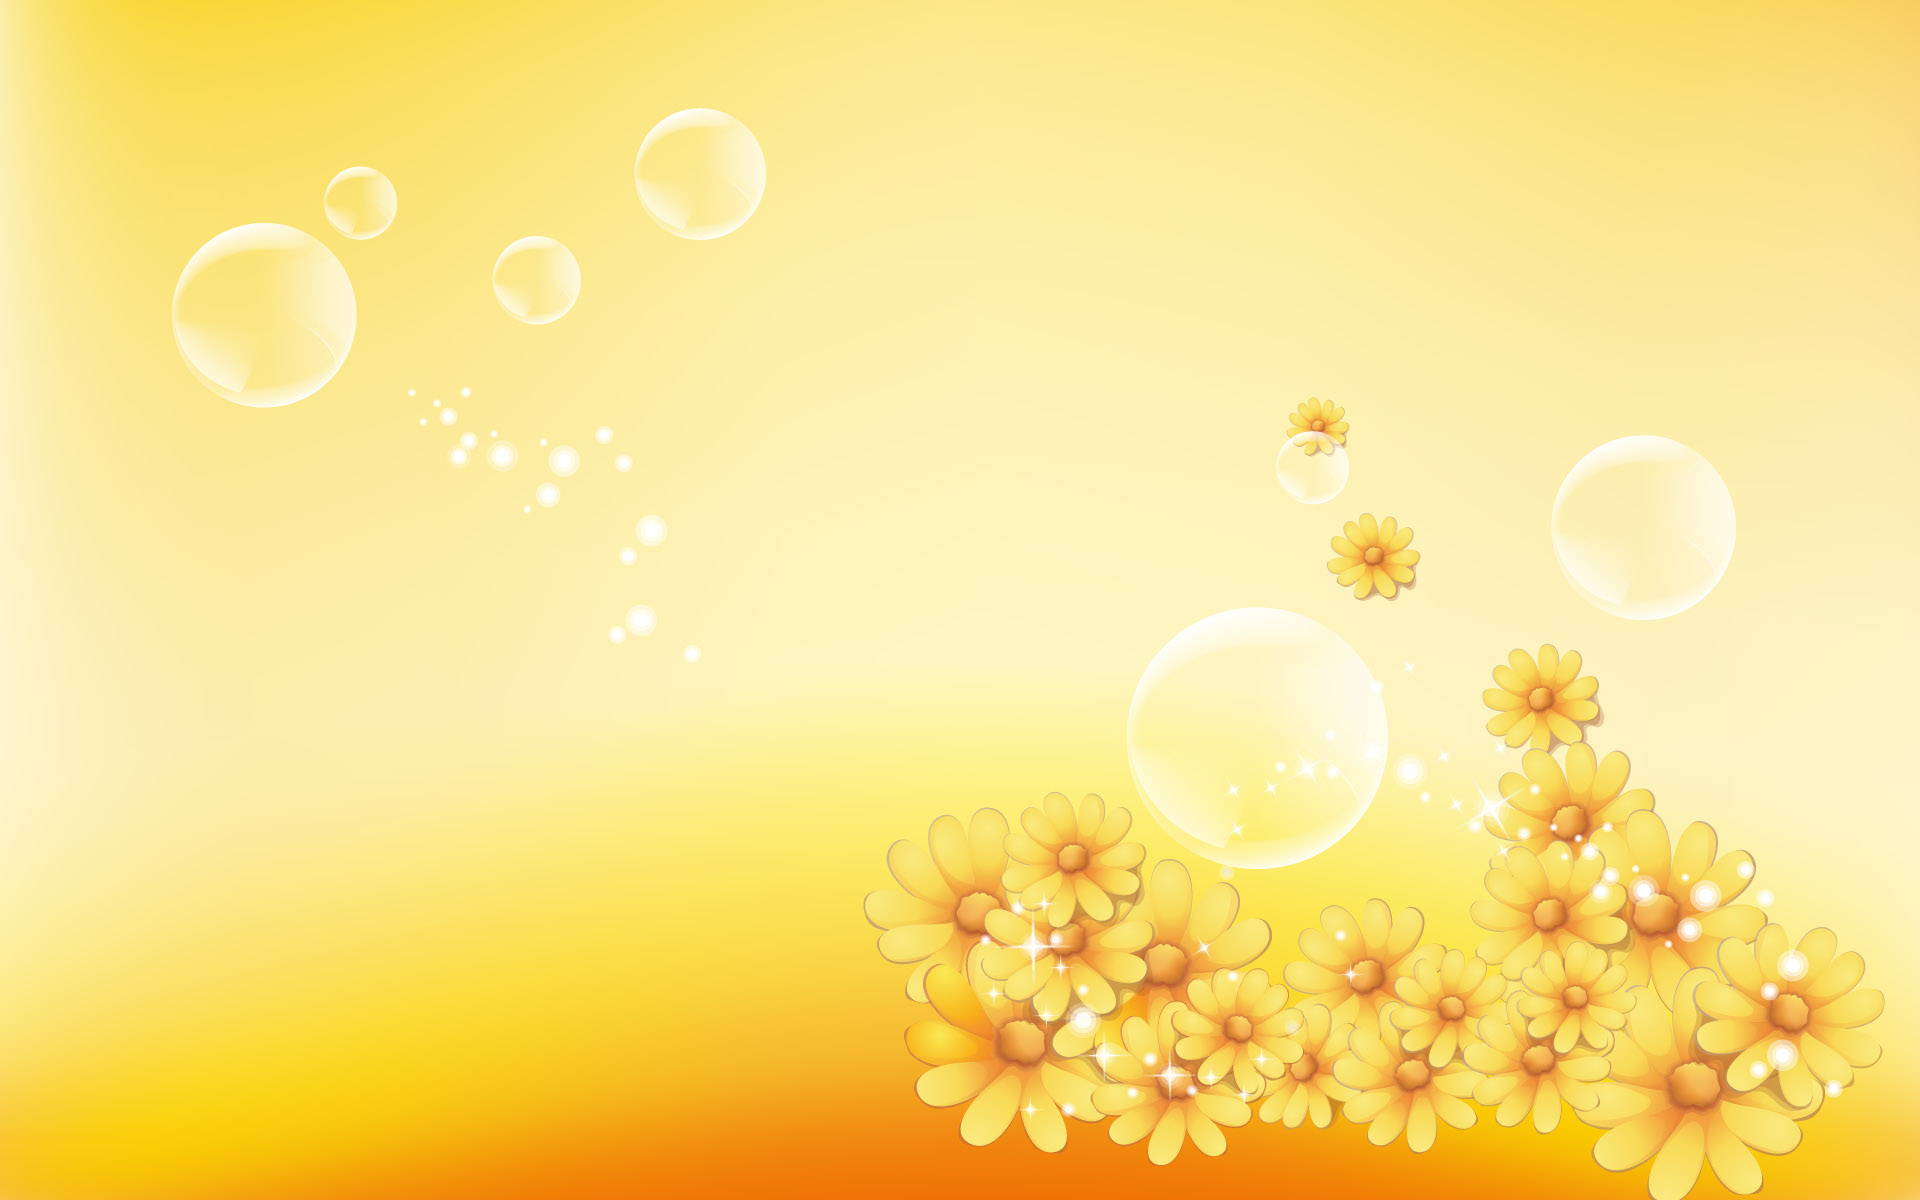 yellow flowers background hd wallpaper yellow flowers background hd wallpaper